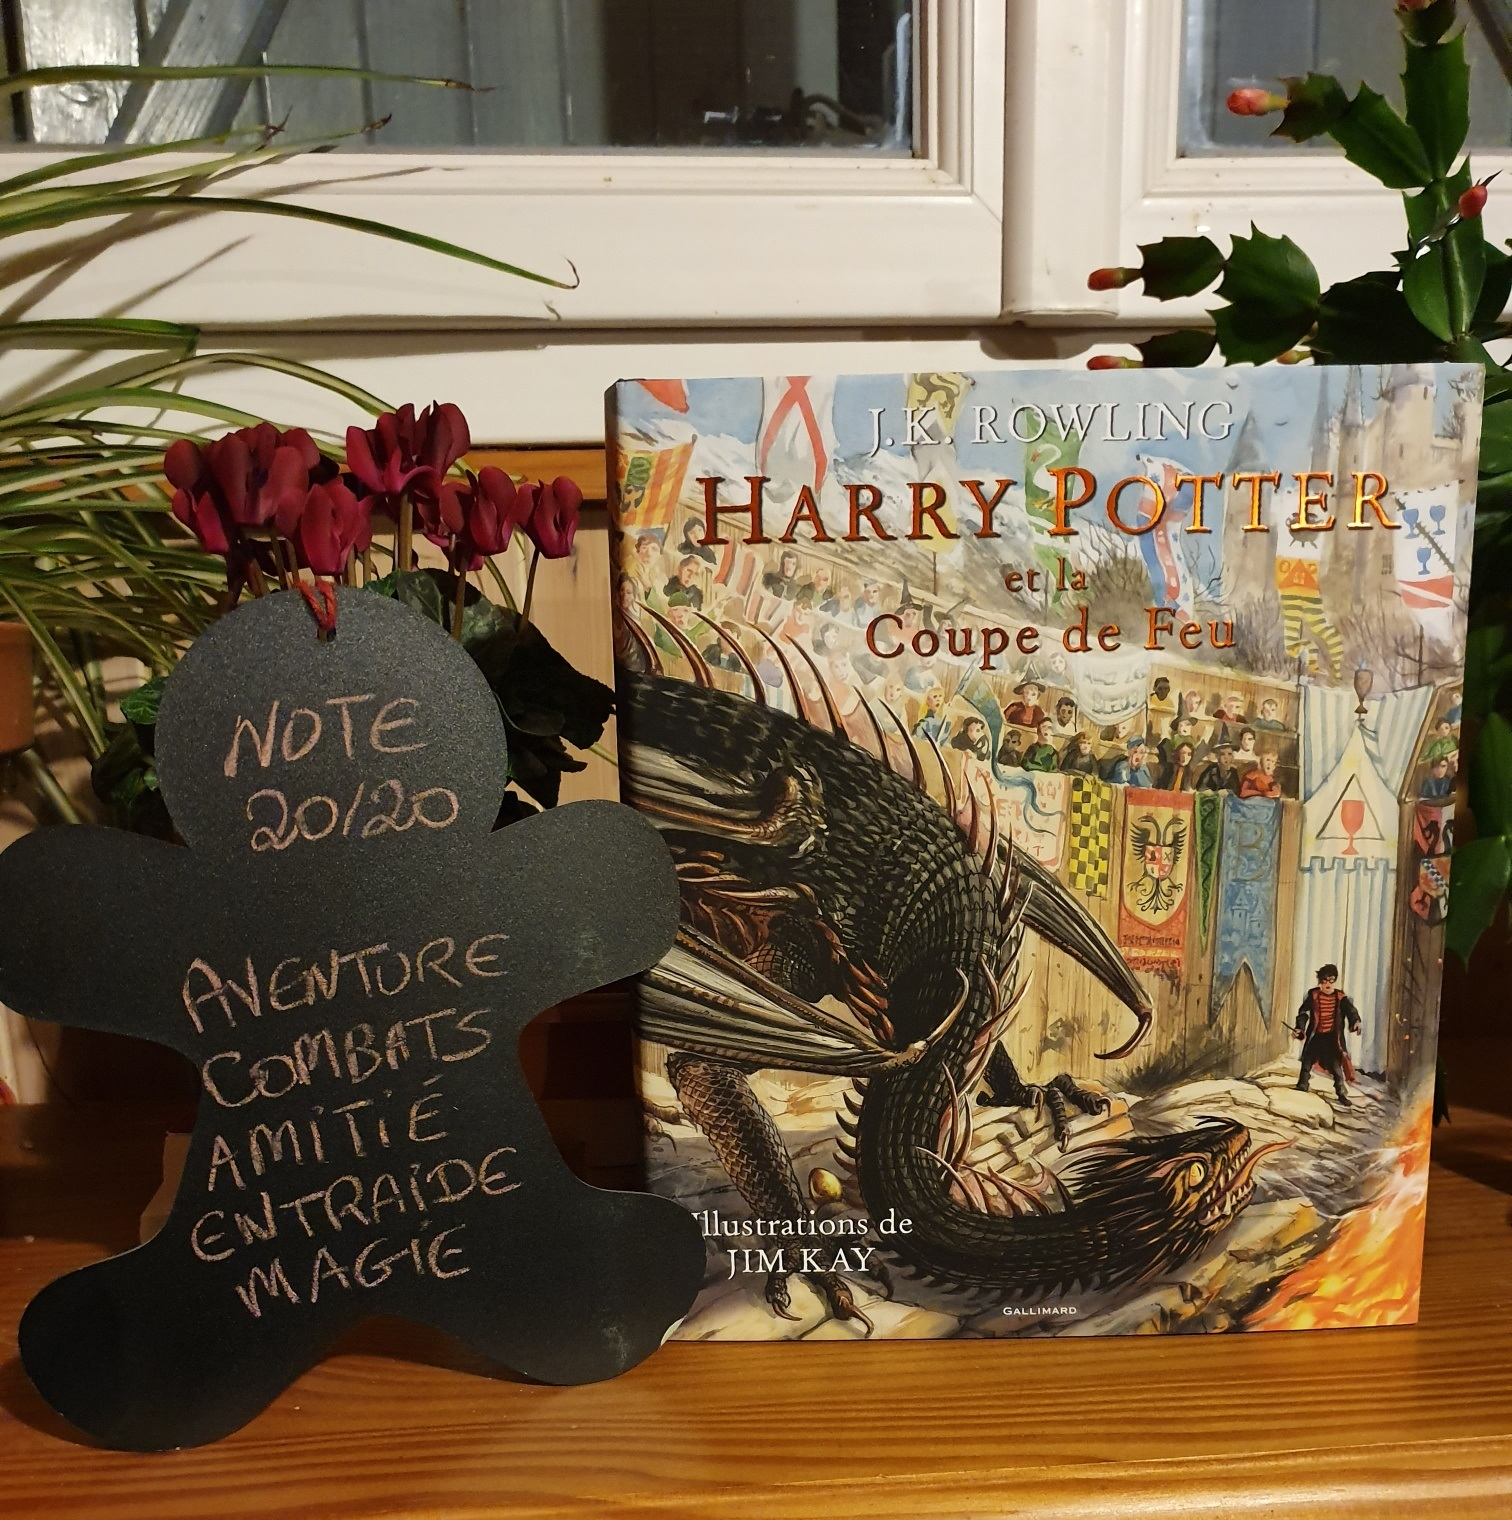 Harry Potter Illustree Tome 4 Harry Potter Et La Coupe